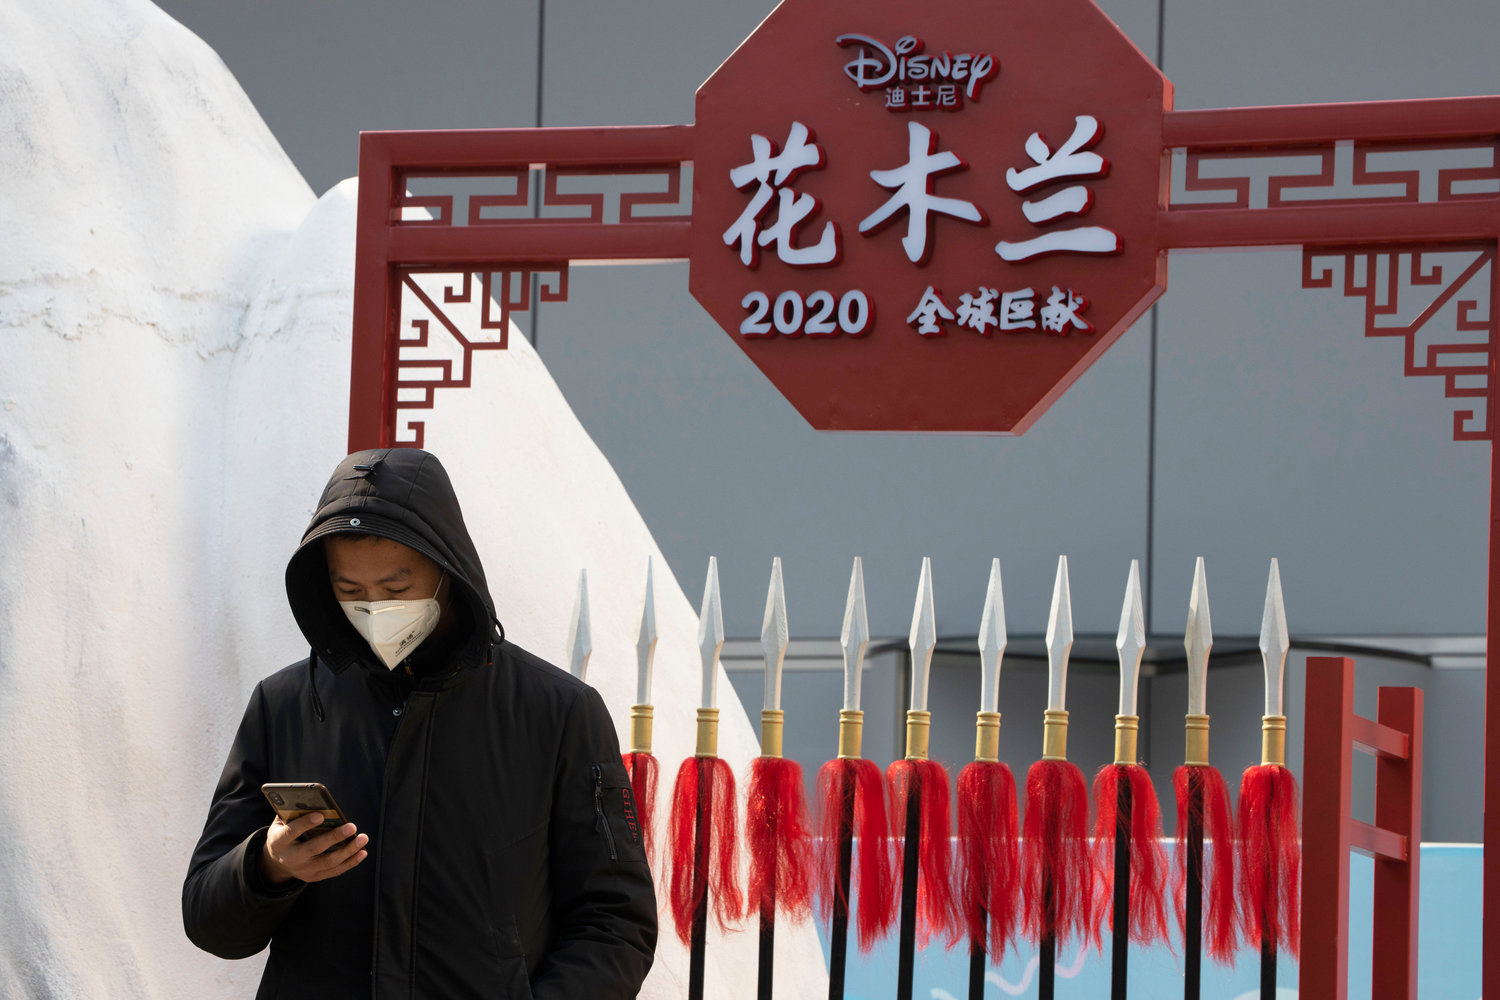 "A man wearing a mask to protect from the coronavirus watch over a set promoting the Disney movie Mulan in.Beijing on Wednesday, Feb. 19, 2020. Disney is under fire for partially filming its live-action reboot ""Mulan"" in Xinjiang, the region in China where the Chinese government has been running mass internment camps for Uyghurs and other Muslim minorities. (AP Photo/Ng Han Guan)"